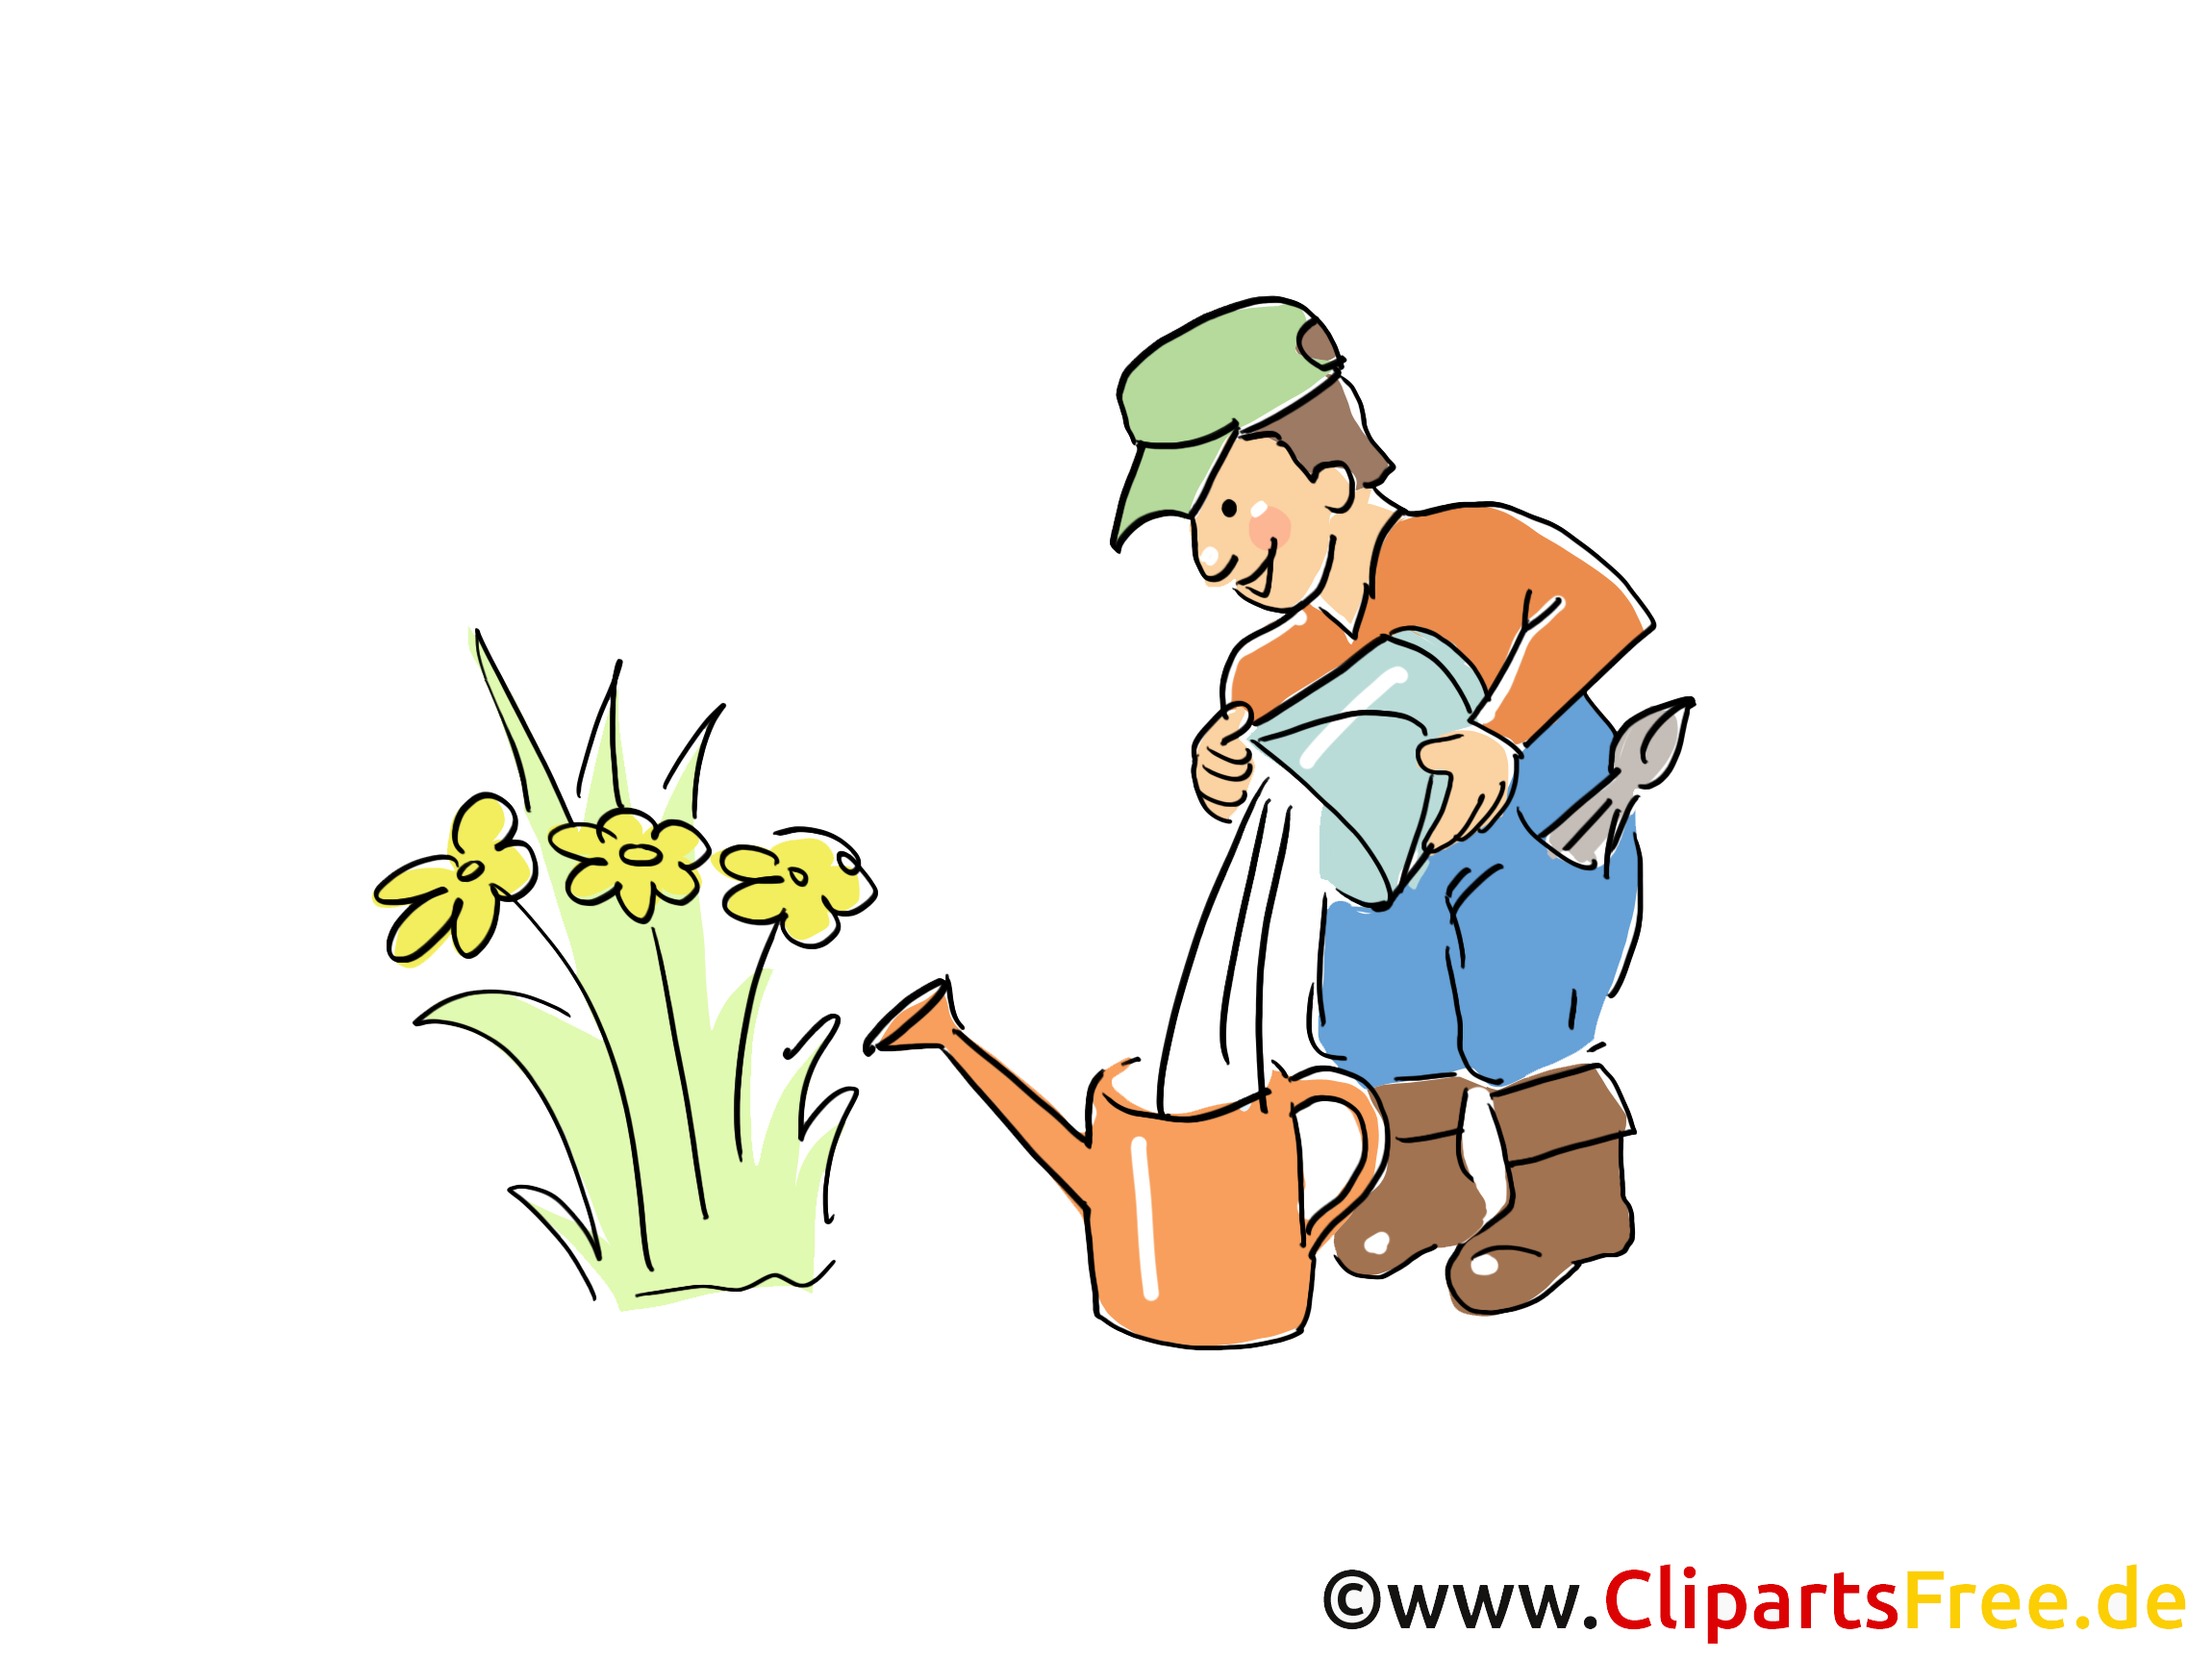 Bauer Clipart, Cartoon, Bild.